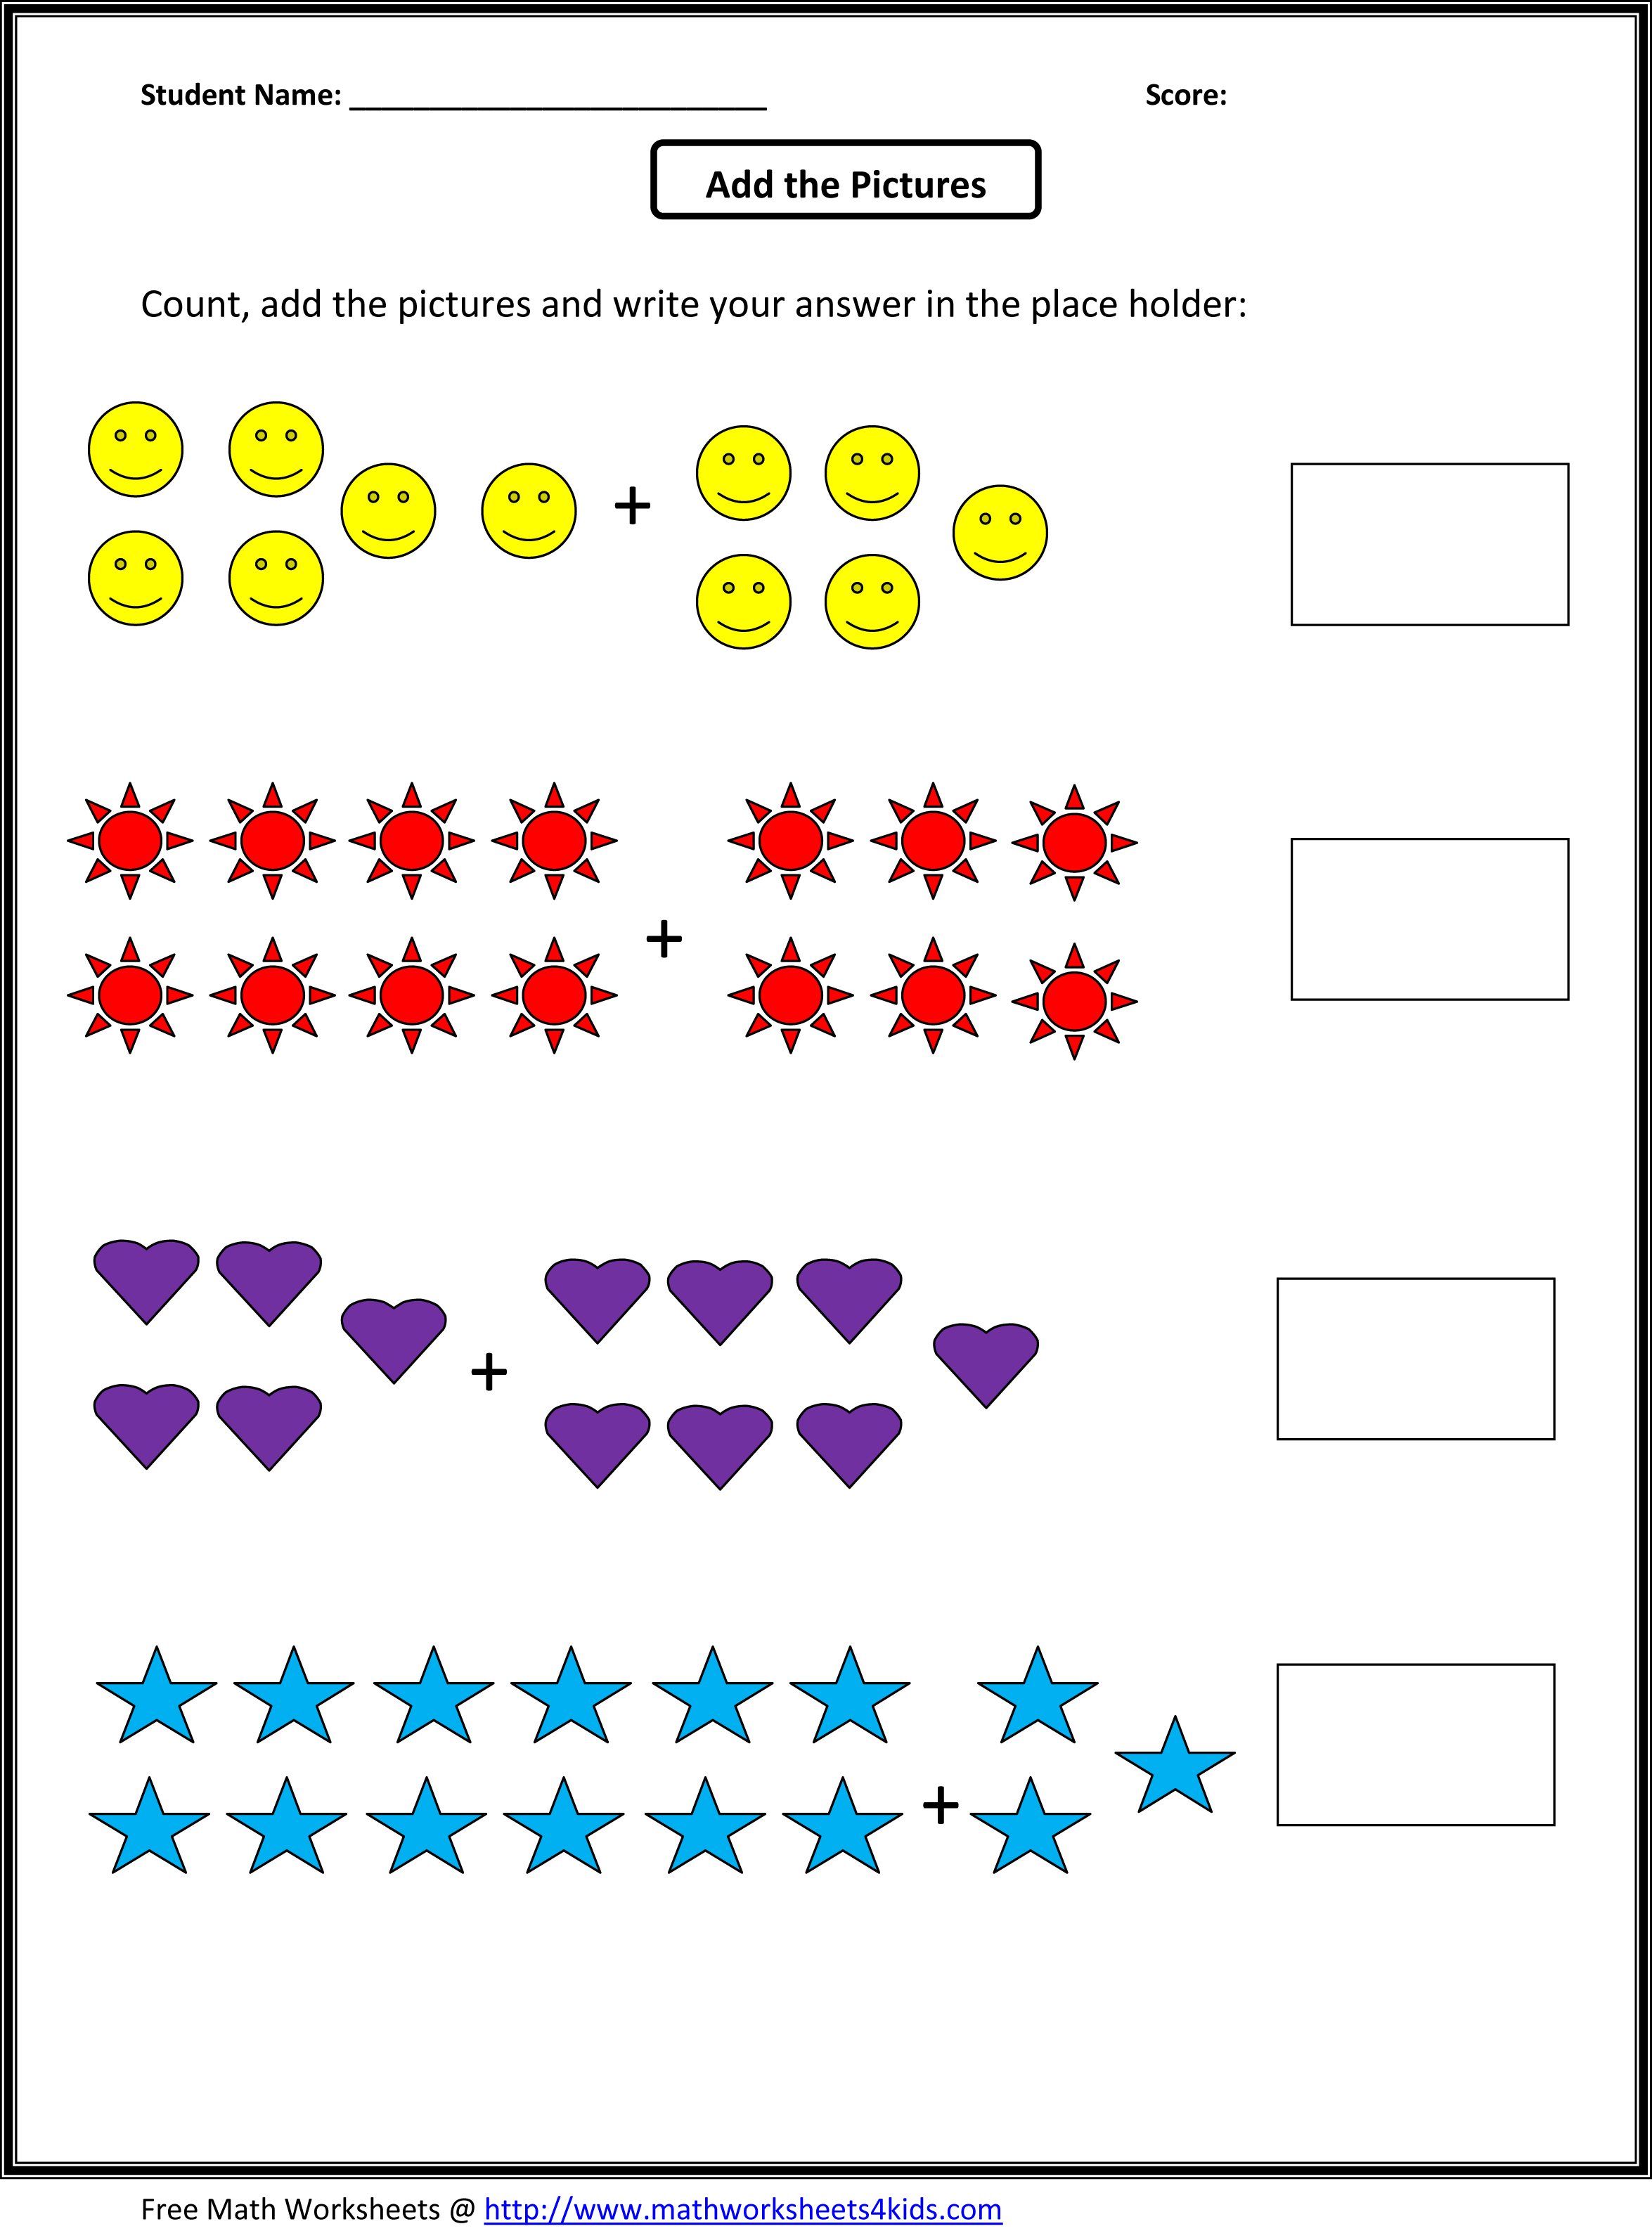 Proatmealus  Splendid Grade  Maths Worksheet  Reocurent With Great Math Worksheets For St Grade Free  Reocurent With Archaic Worksheet Creator Also Common Denominator Worksheets In Addition Integumentary System Worksheet And Continents And Oceans Worksheet As Well As Worksheet Works Com Answers Additionally Pythagorean Theorem Worksheet Pdf From Reocurentcom With Proatmealus  Great Grade  Maths Worksheet  Reocurent With Archaic Math Worksheets For St Grade Free  Reocurent And Splendid Worksheet Creator Also Common Denominator Worksheets In Addition Integumentary System Worksheet From Reocurentcom